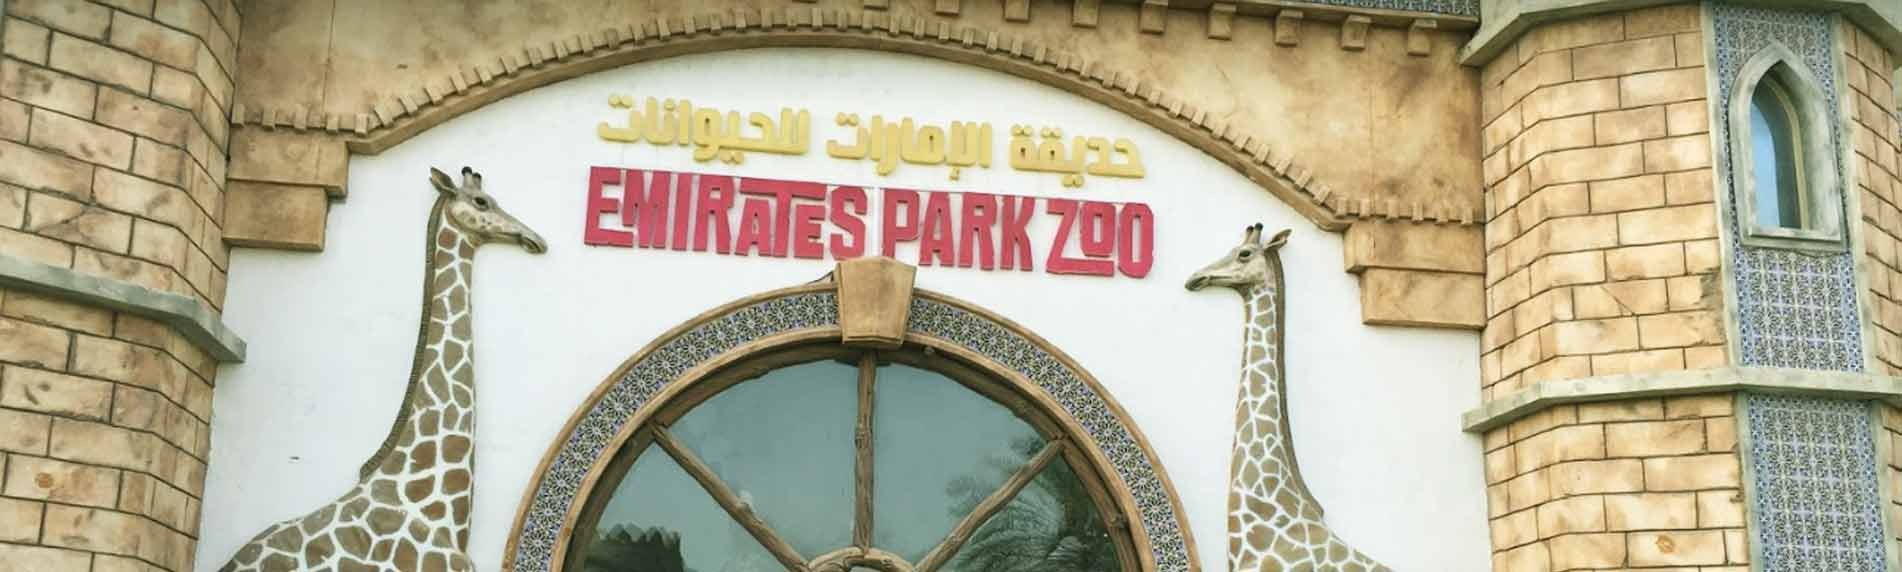 Emirates-Park-Zoo